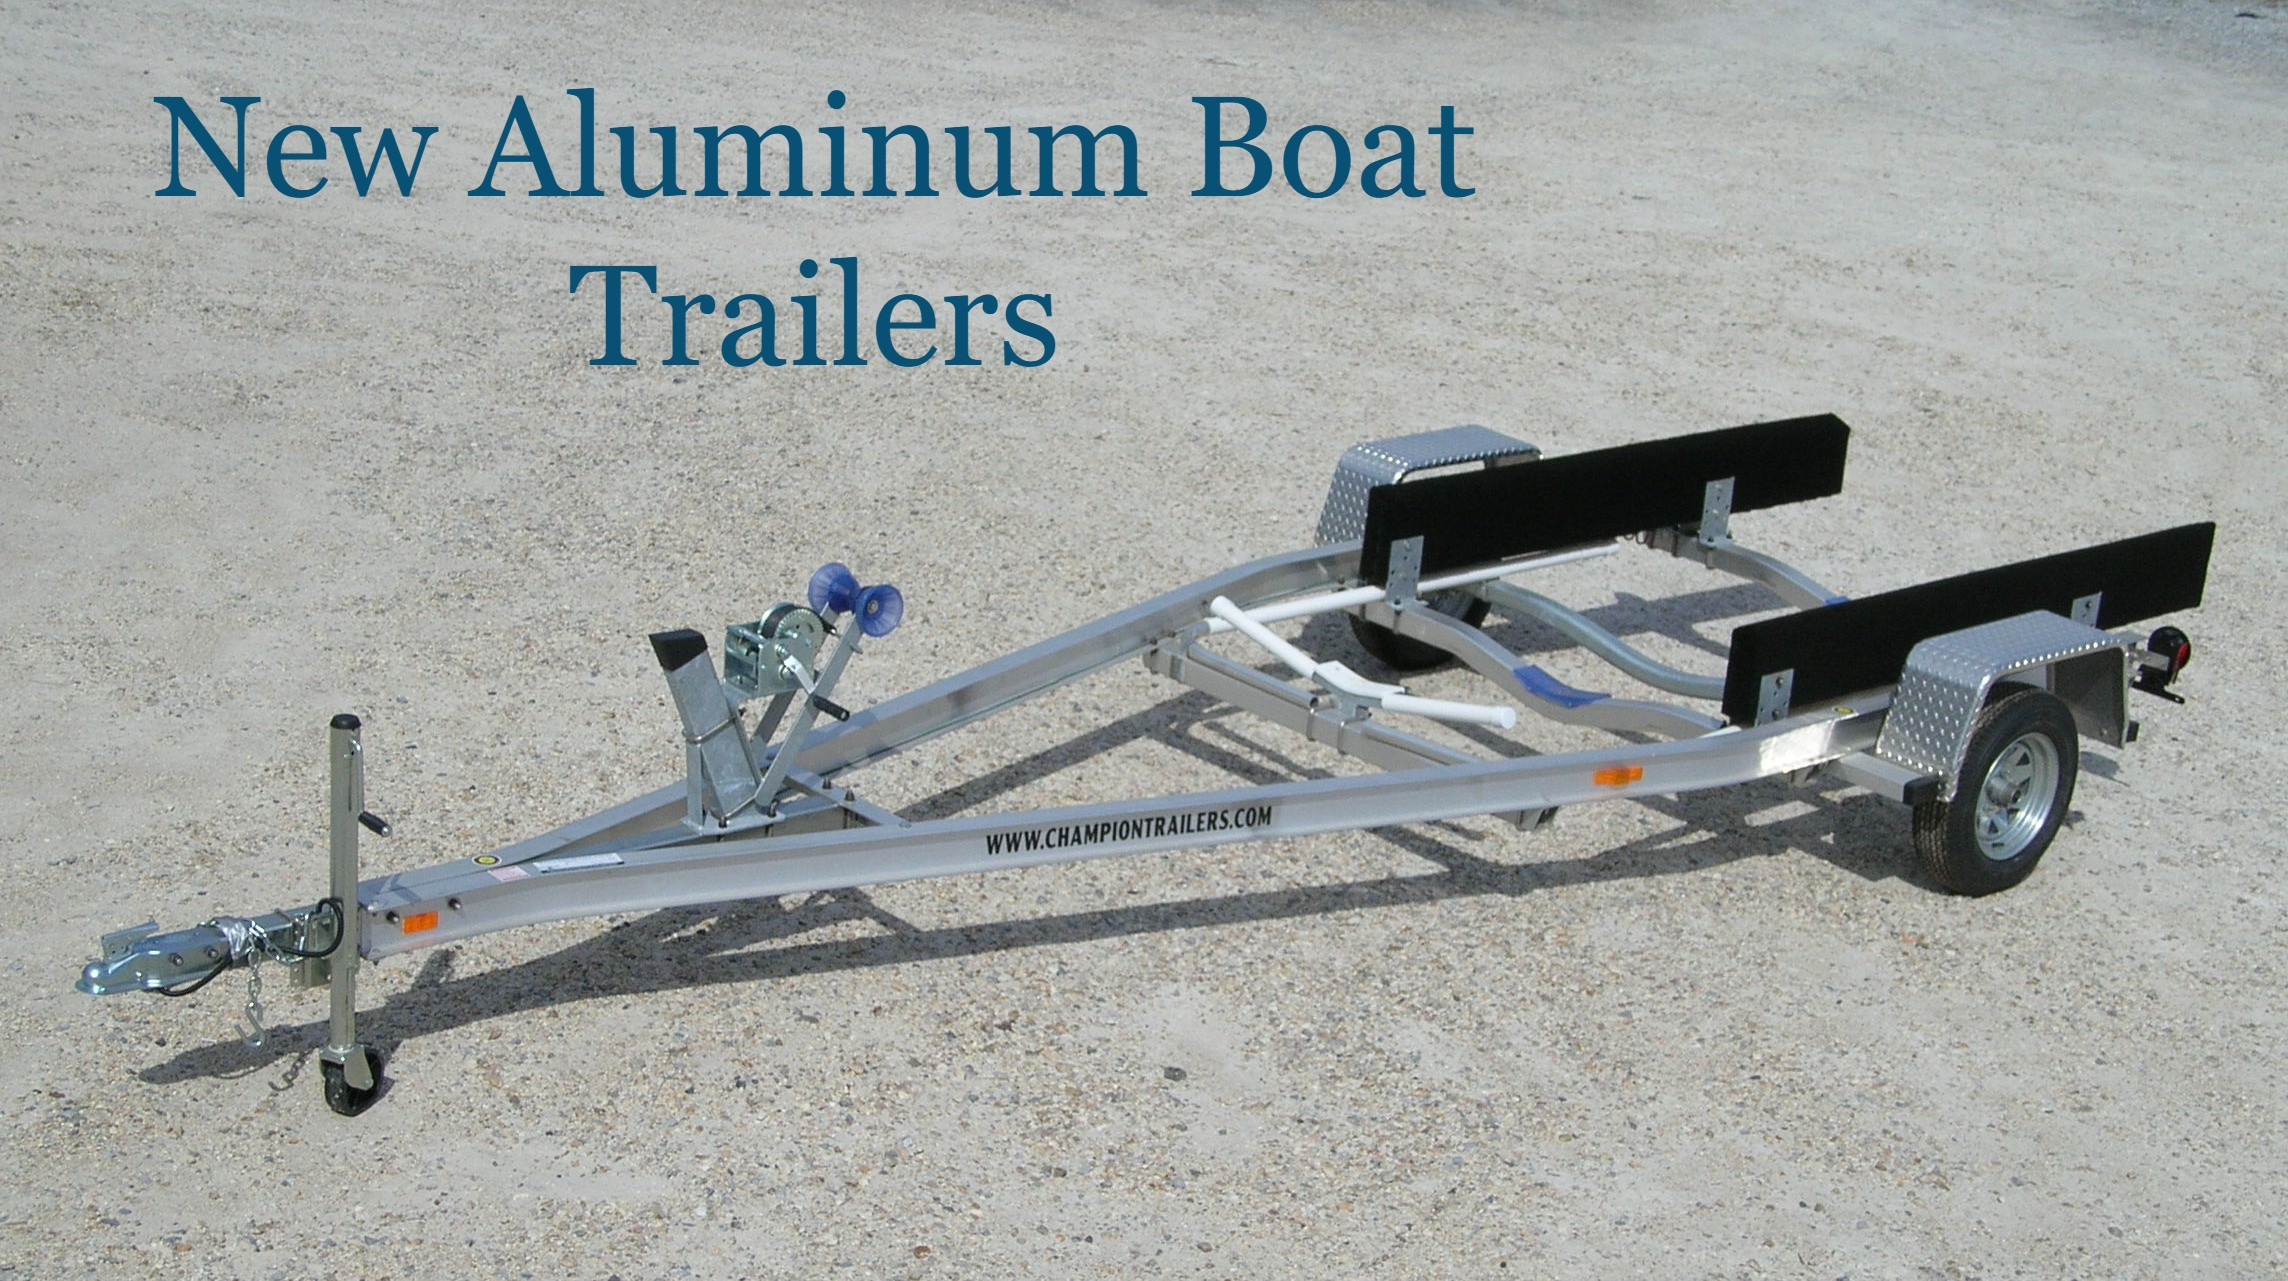 trusted provider of boat and utility trailer parts and repair - champion  trailer parts